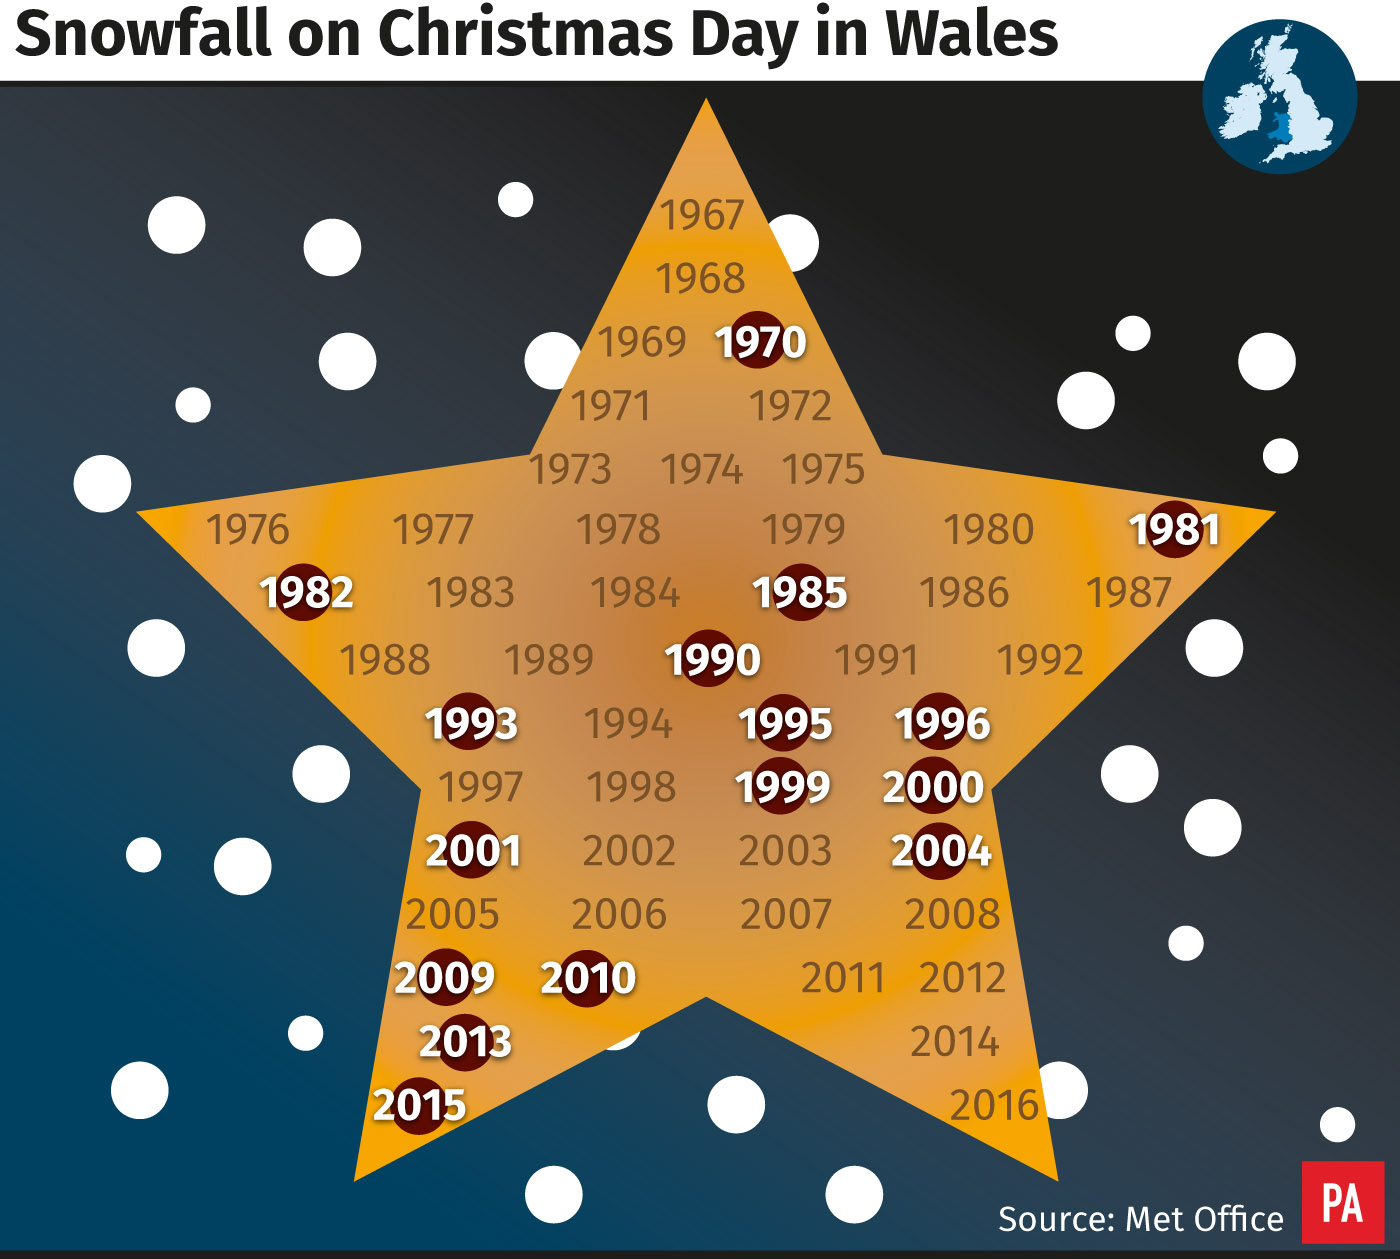 Snowfall on Christmas day in Wales.